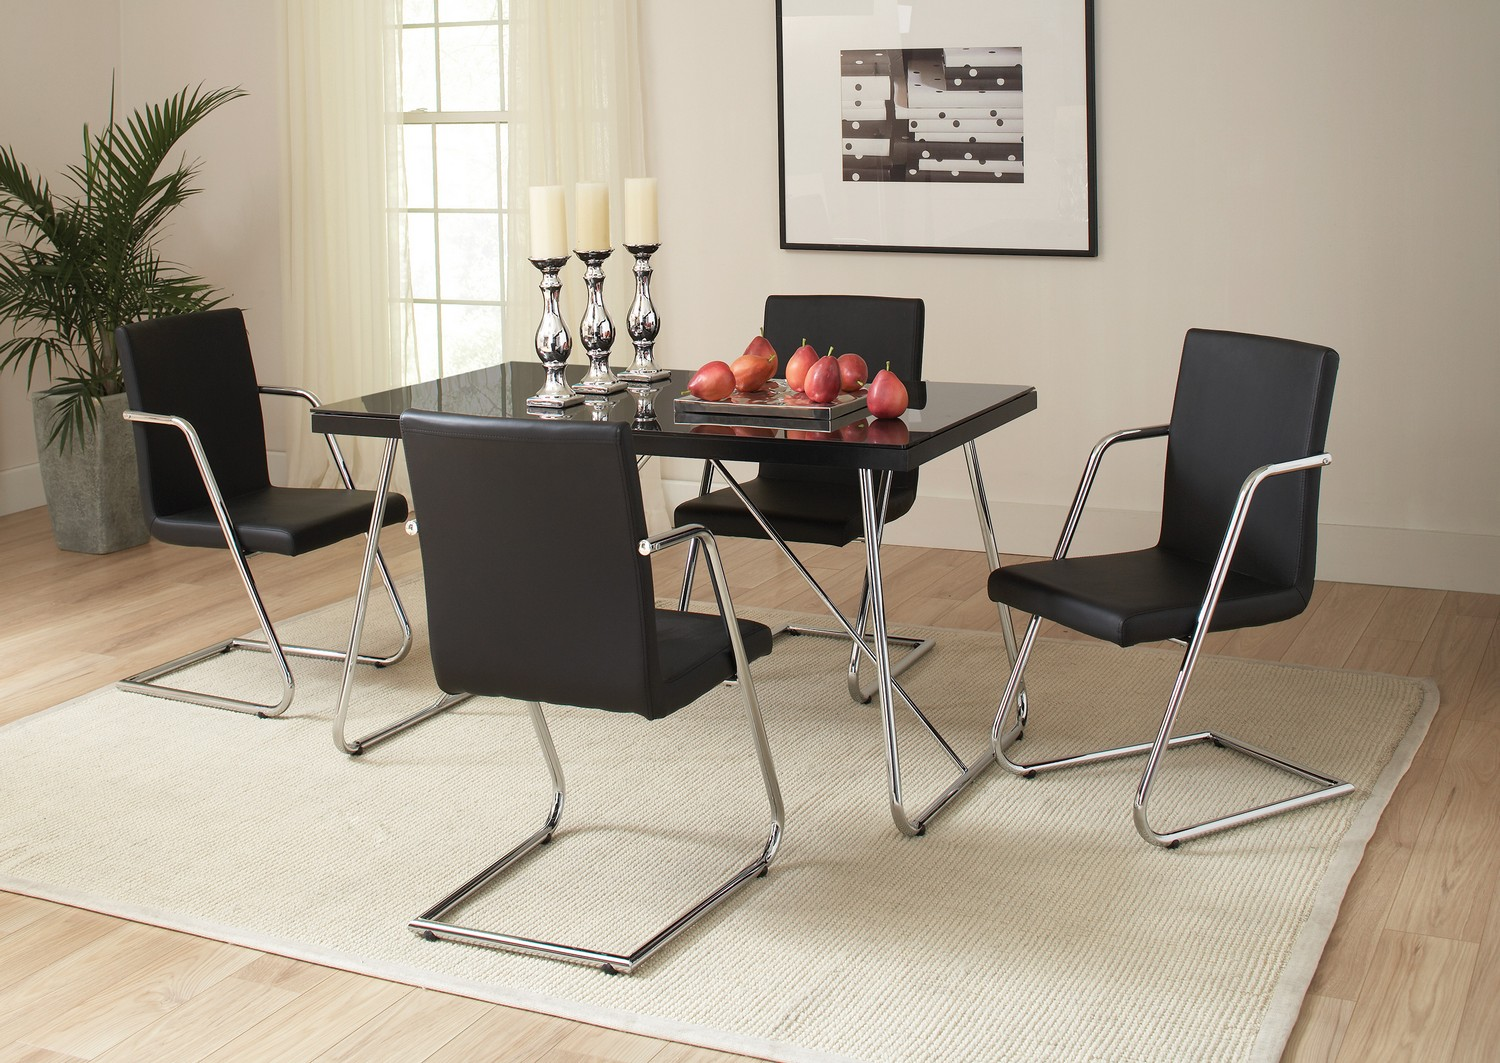 Coaster Avram Dining Table - Chrome/Black Glass